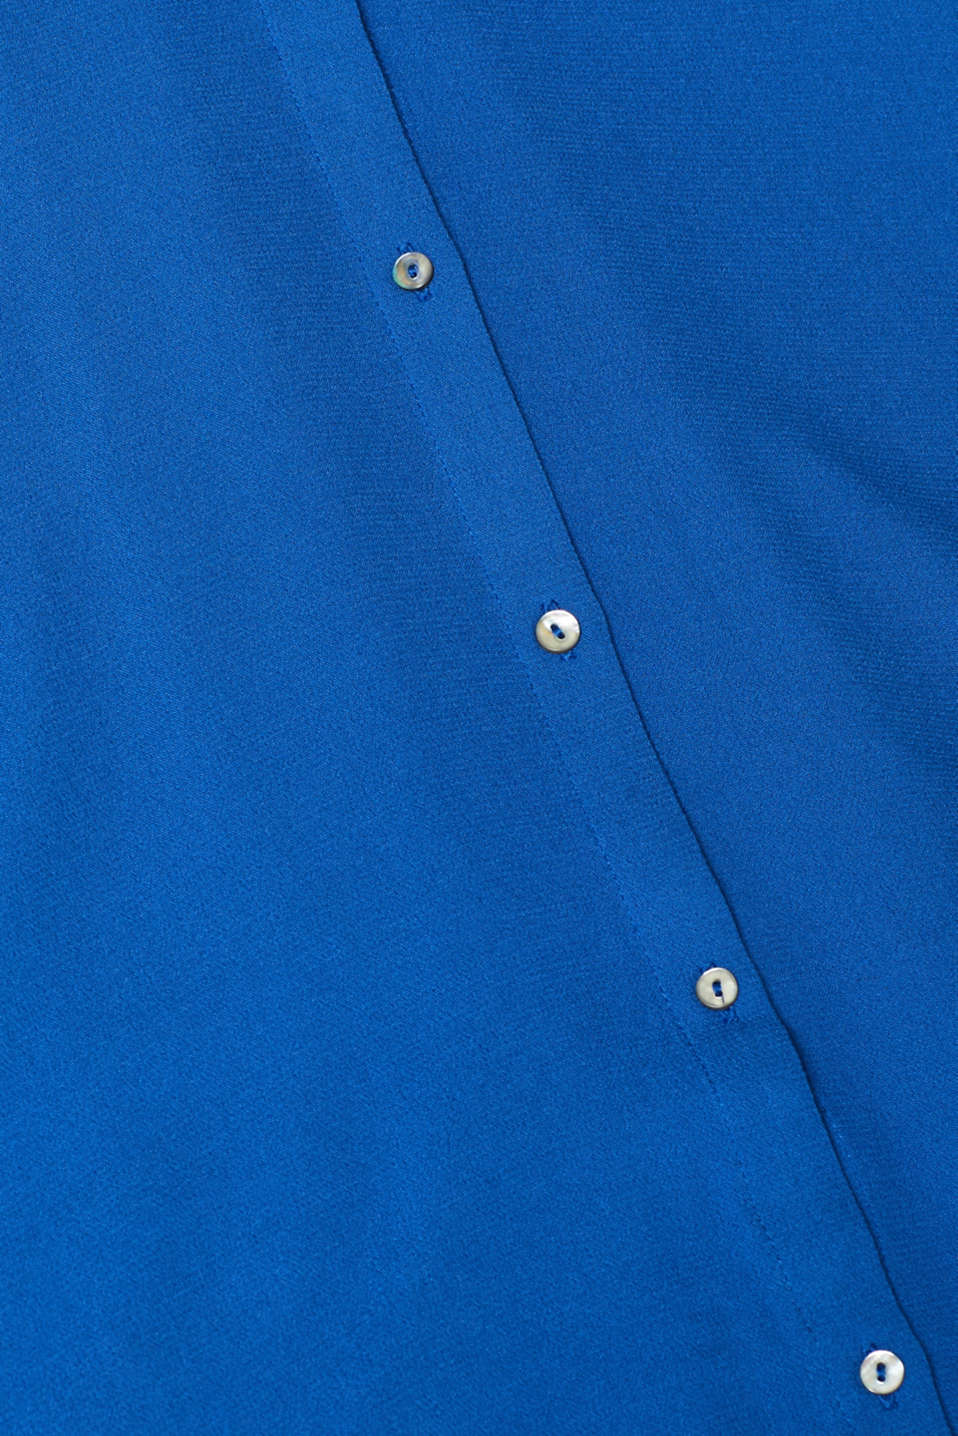 Shirt blouse in crêpe fabric, BLUE, detail image number 4